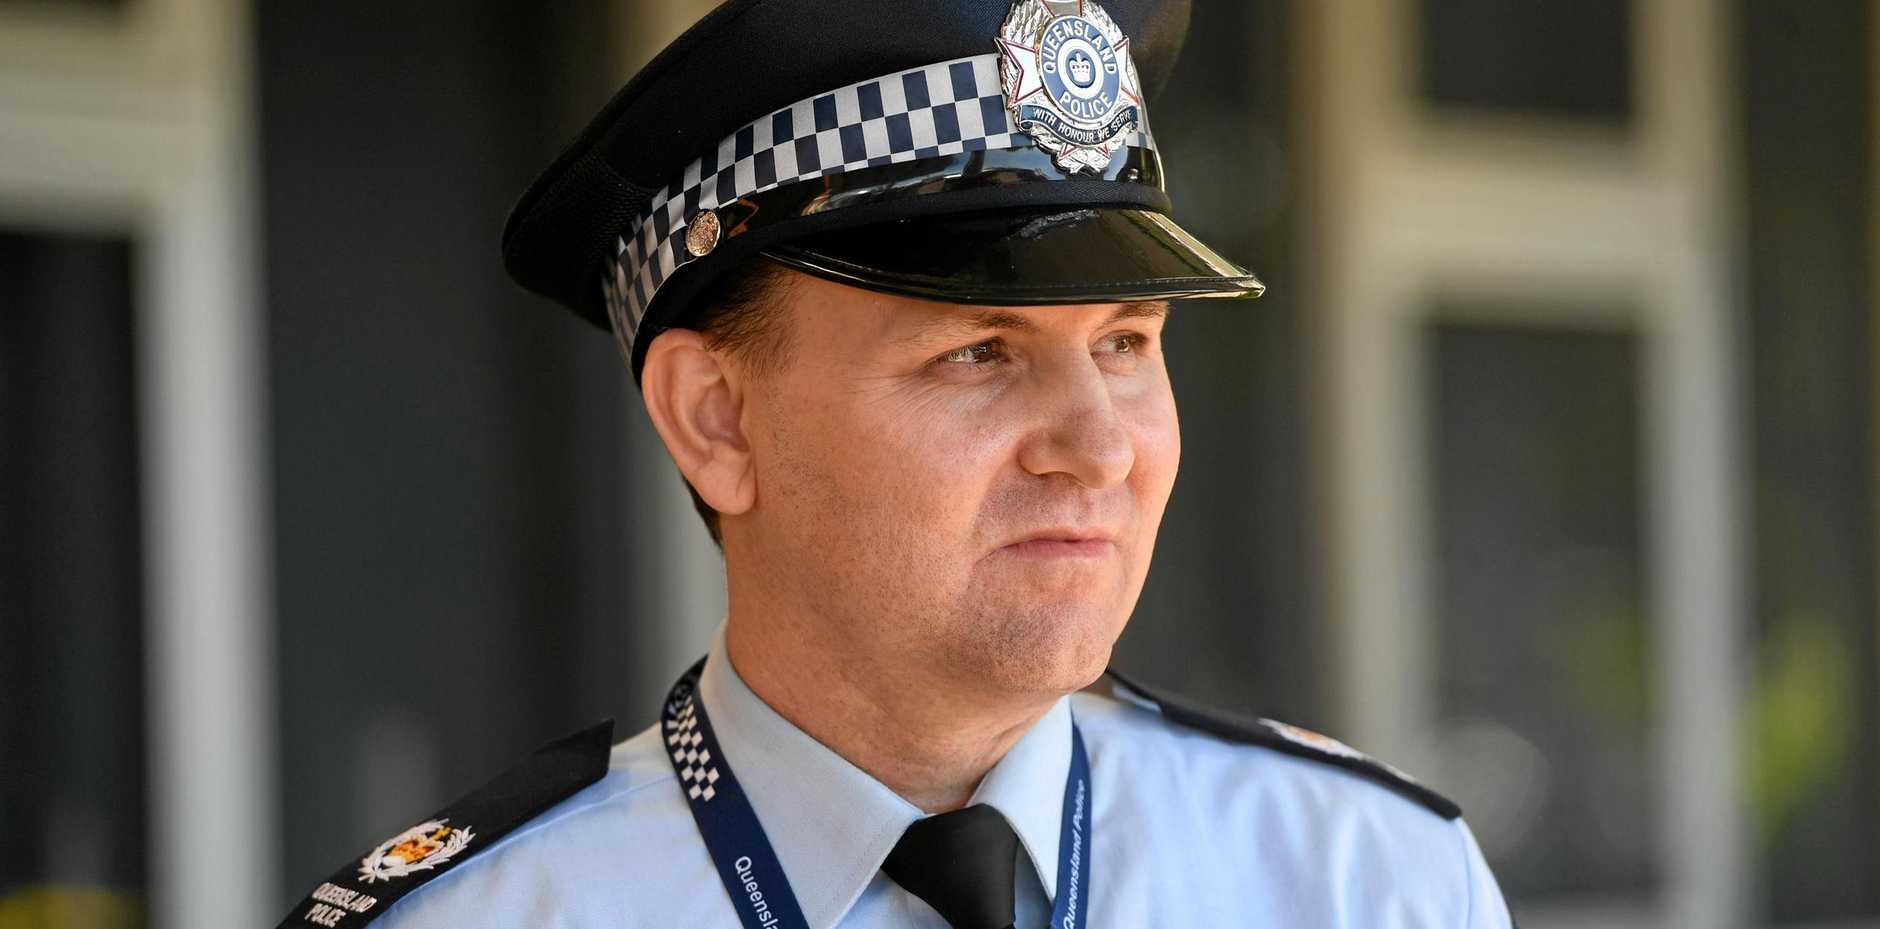 BUNDABERG POLICE: Senior Sergeant Michael McGarry Officer in Charge has just been appointed to the region and says he is ready to tackle crime head on.